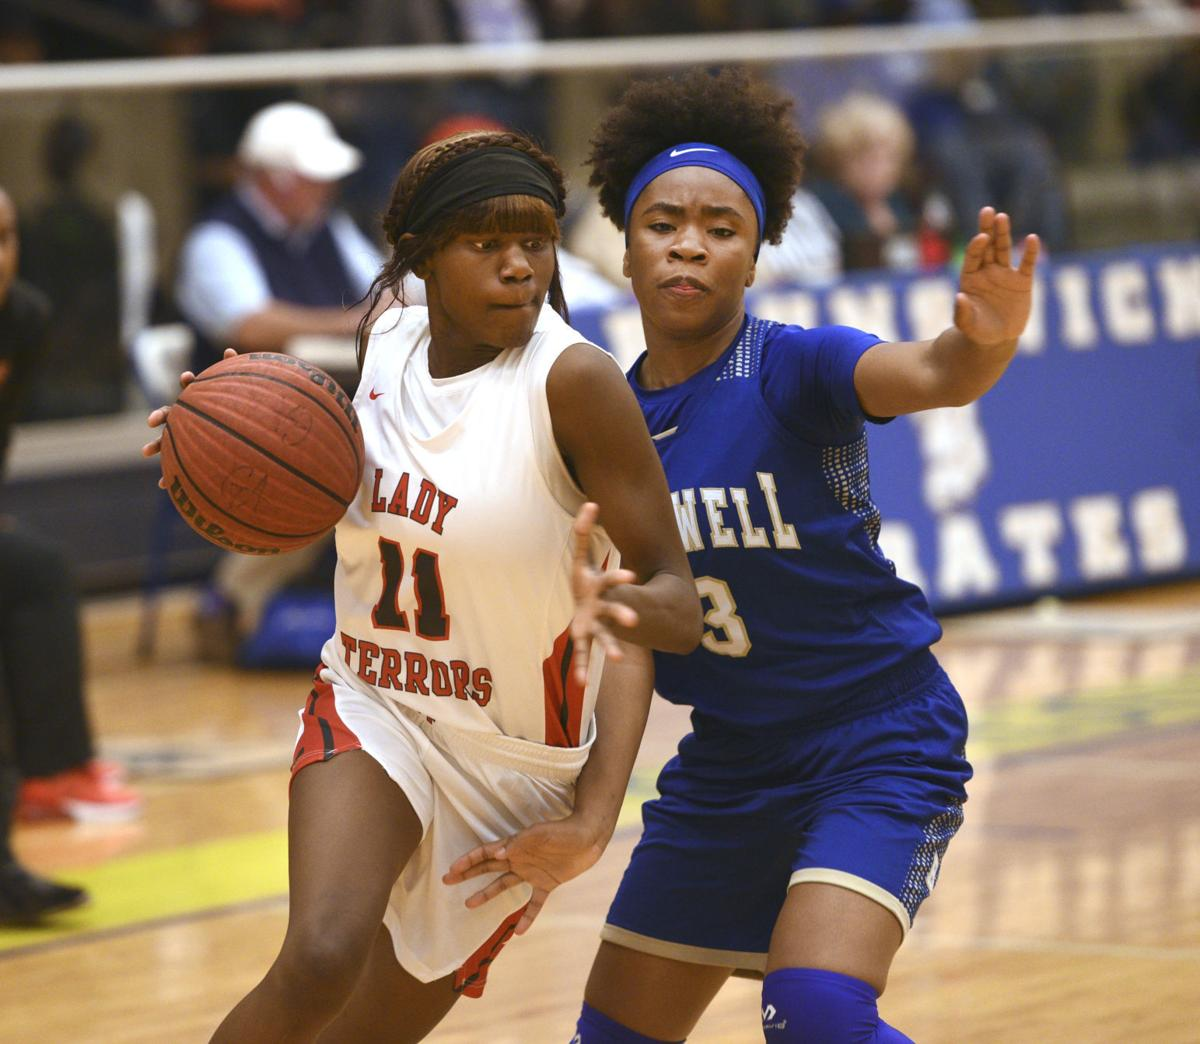 020919_ga bradwell girls basketball 1